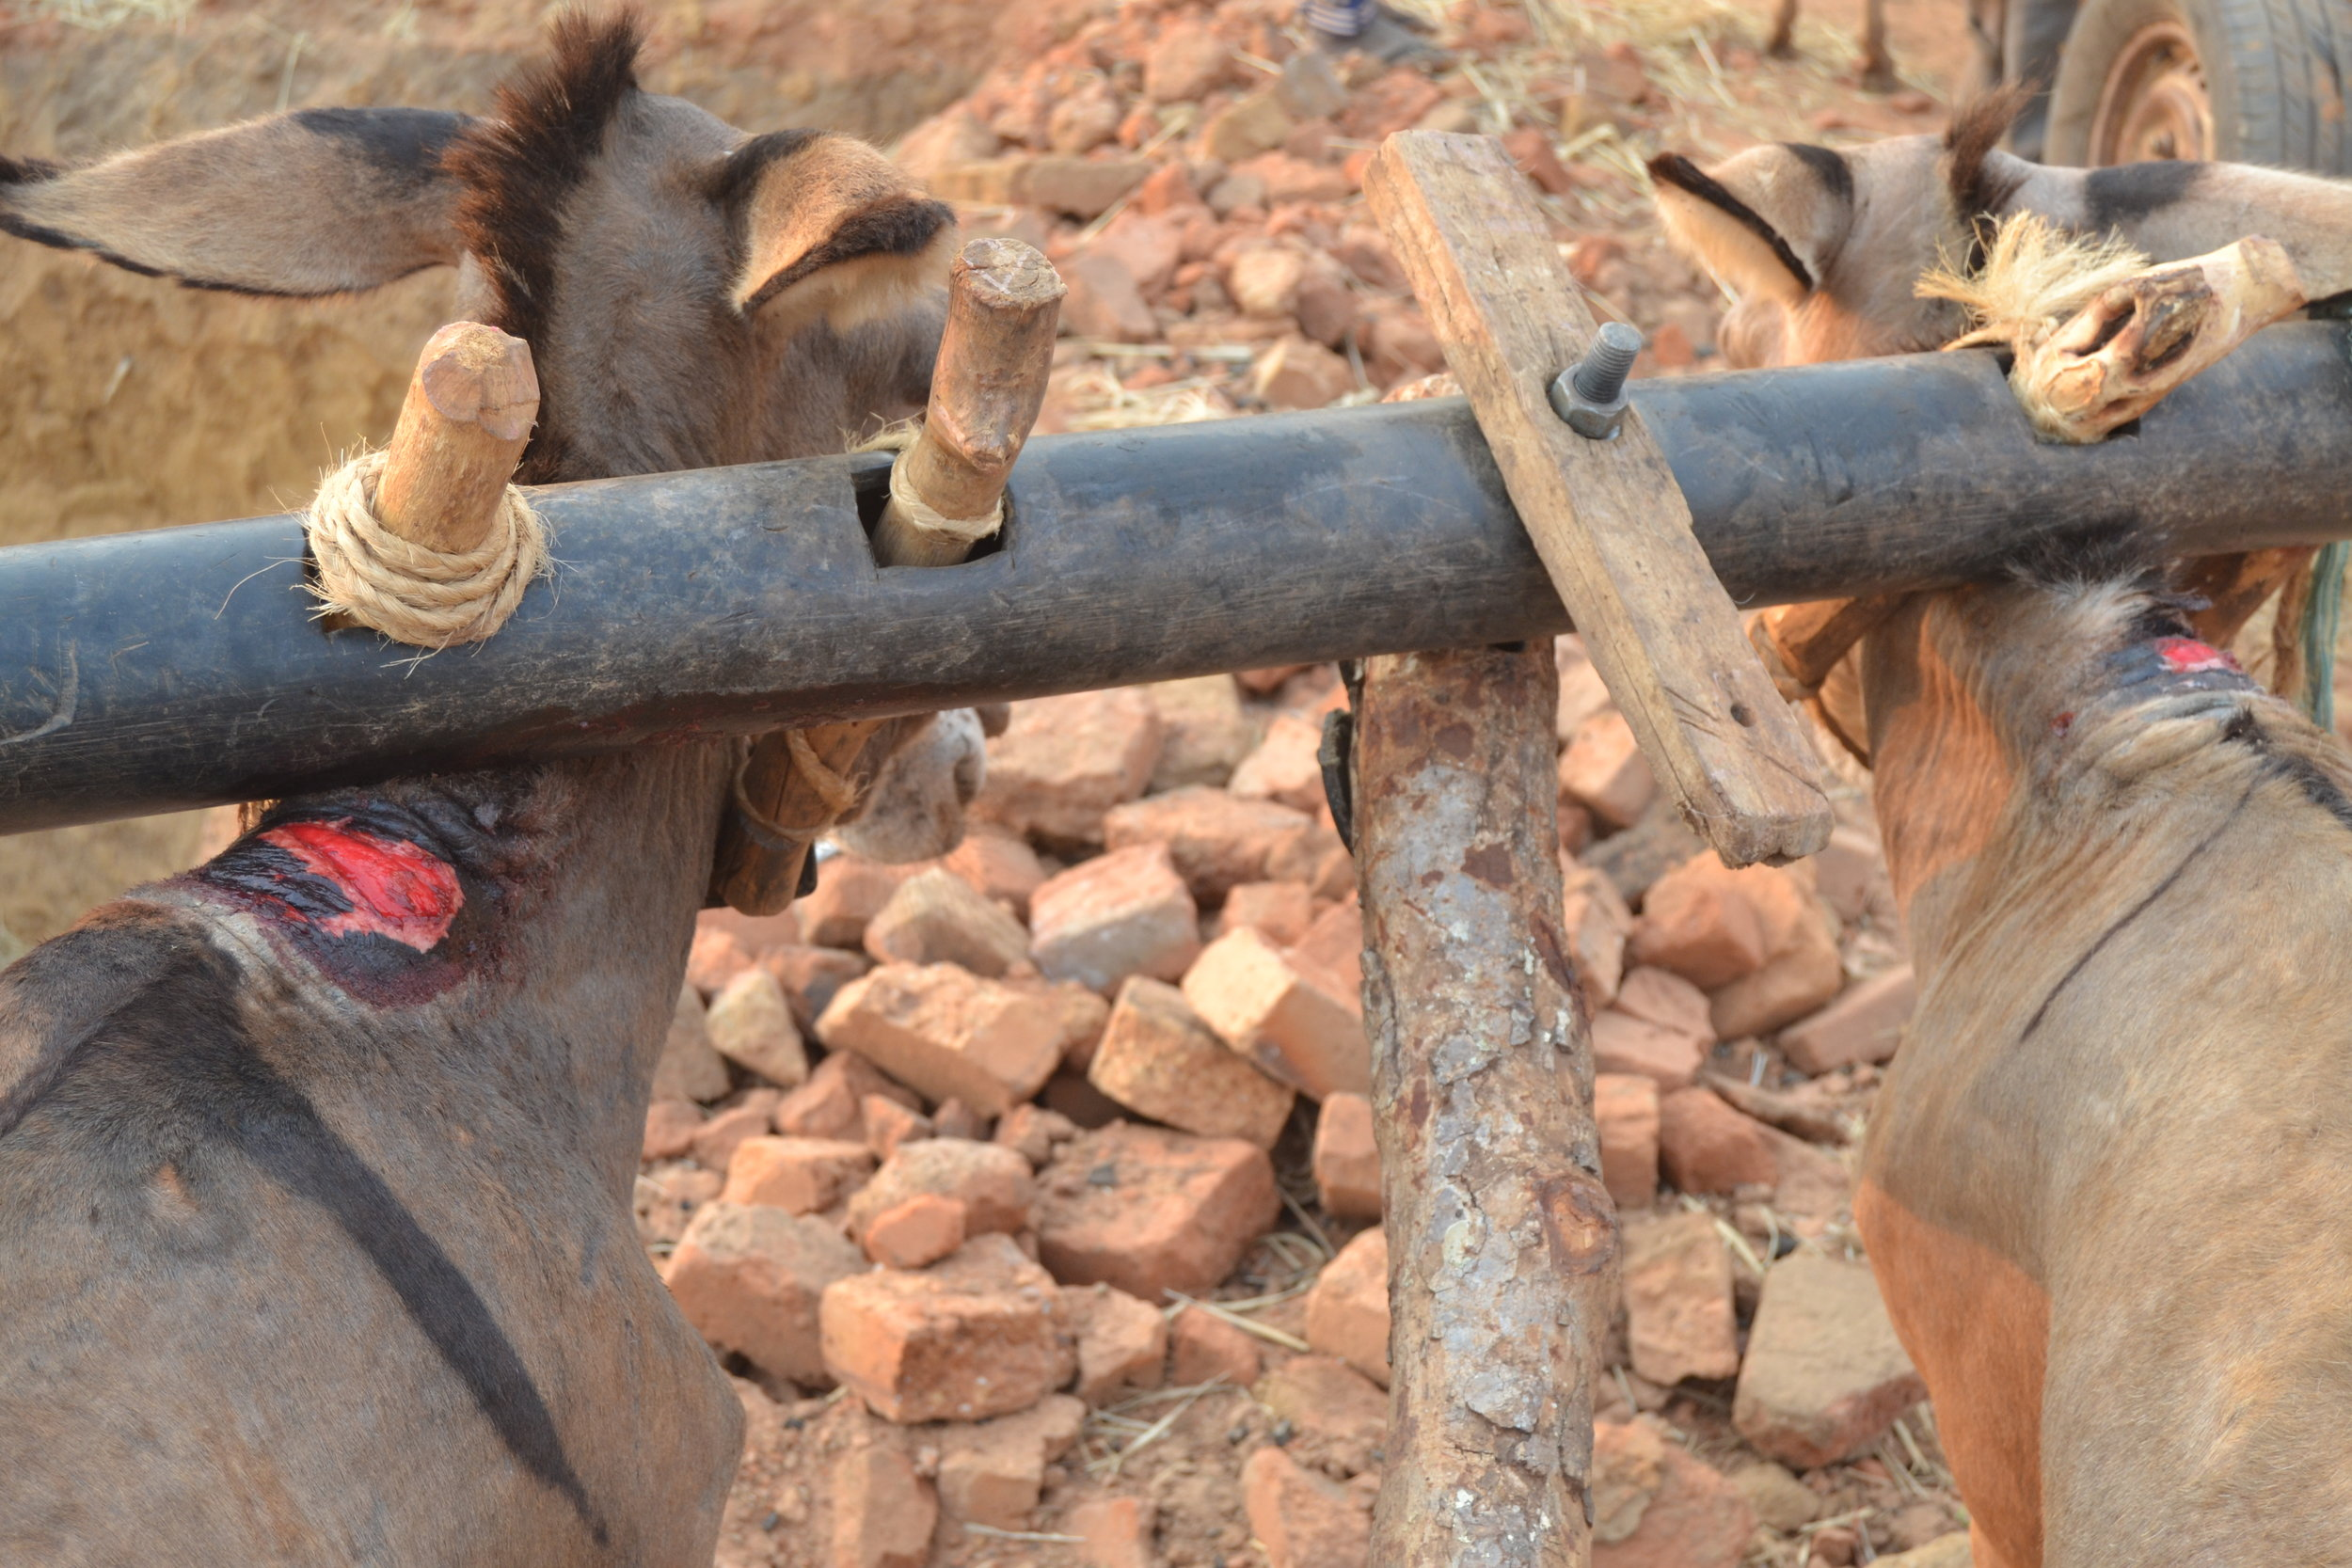 Painful yoke cart causing pain and wounds from the heavy yoke on the donkeys necks.